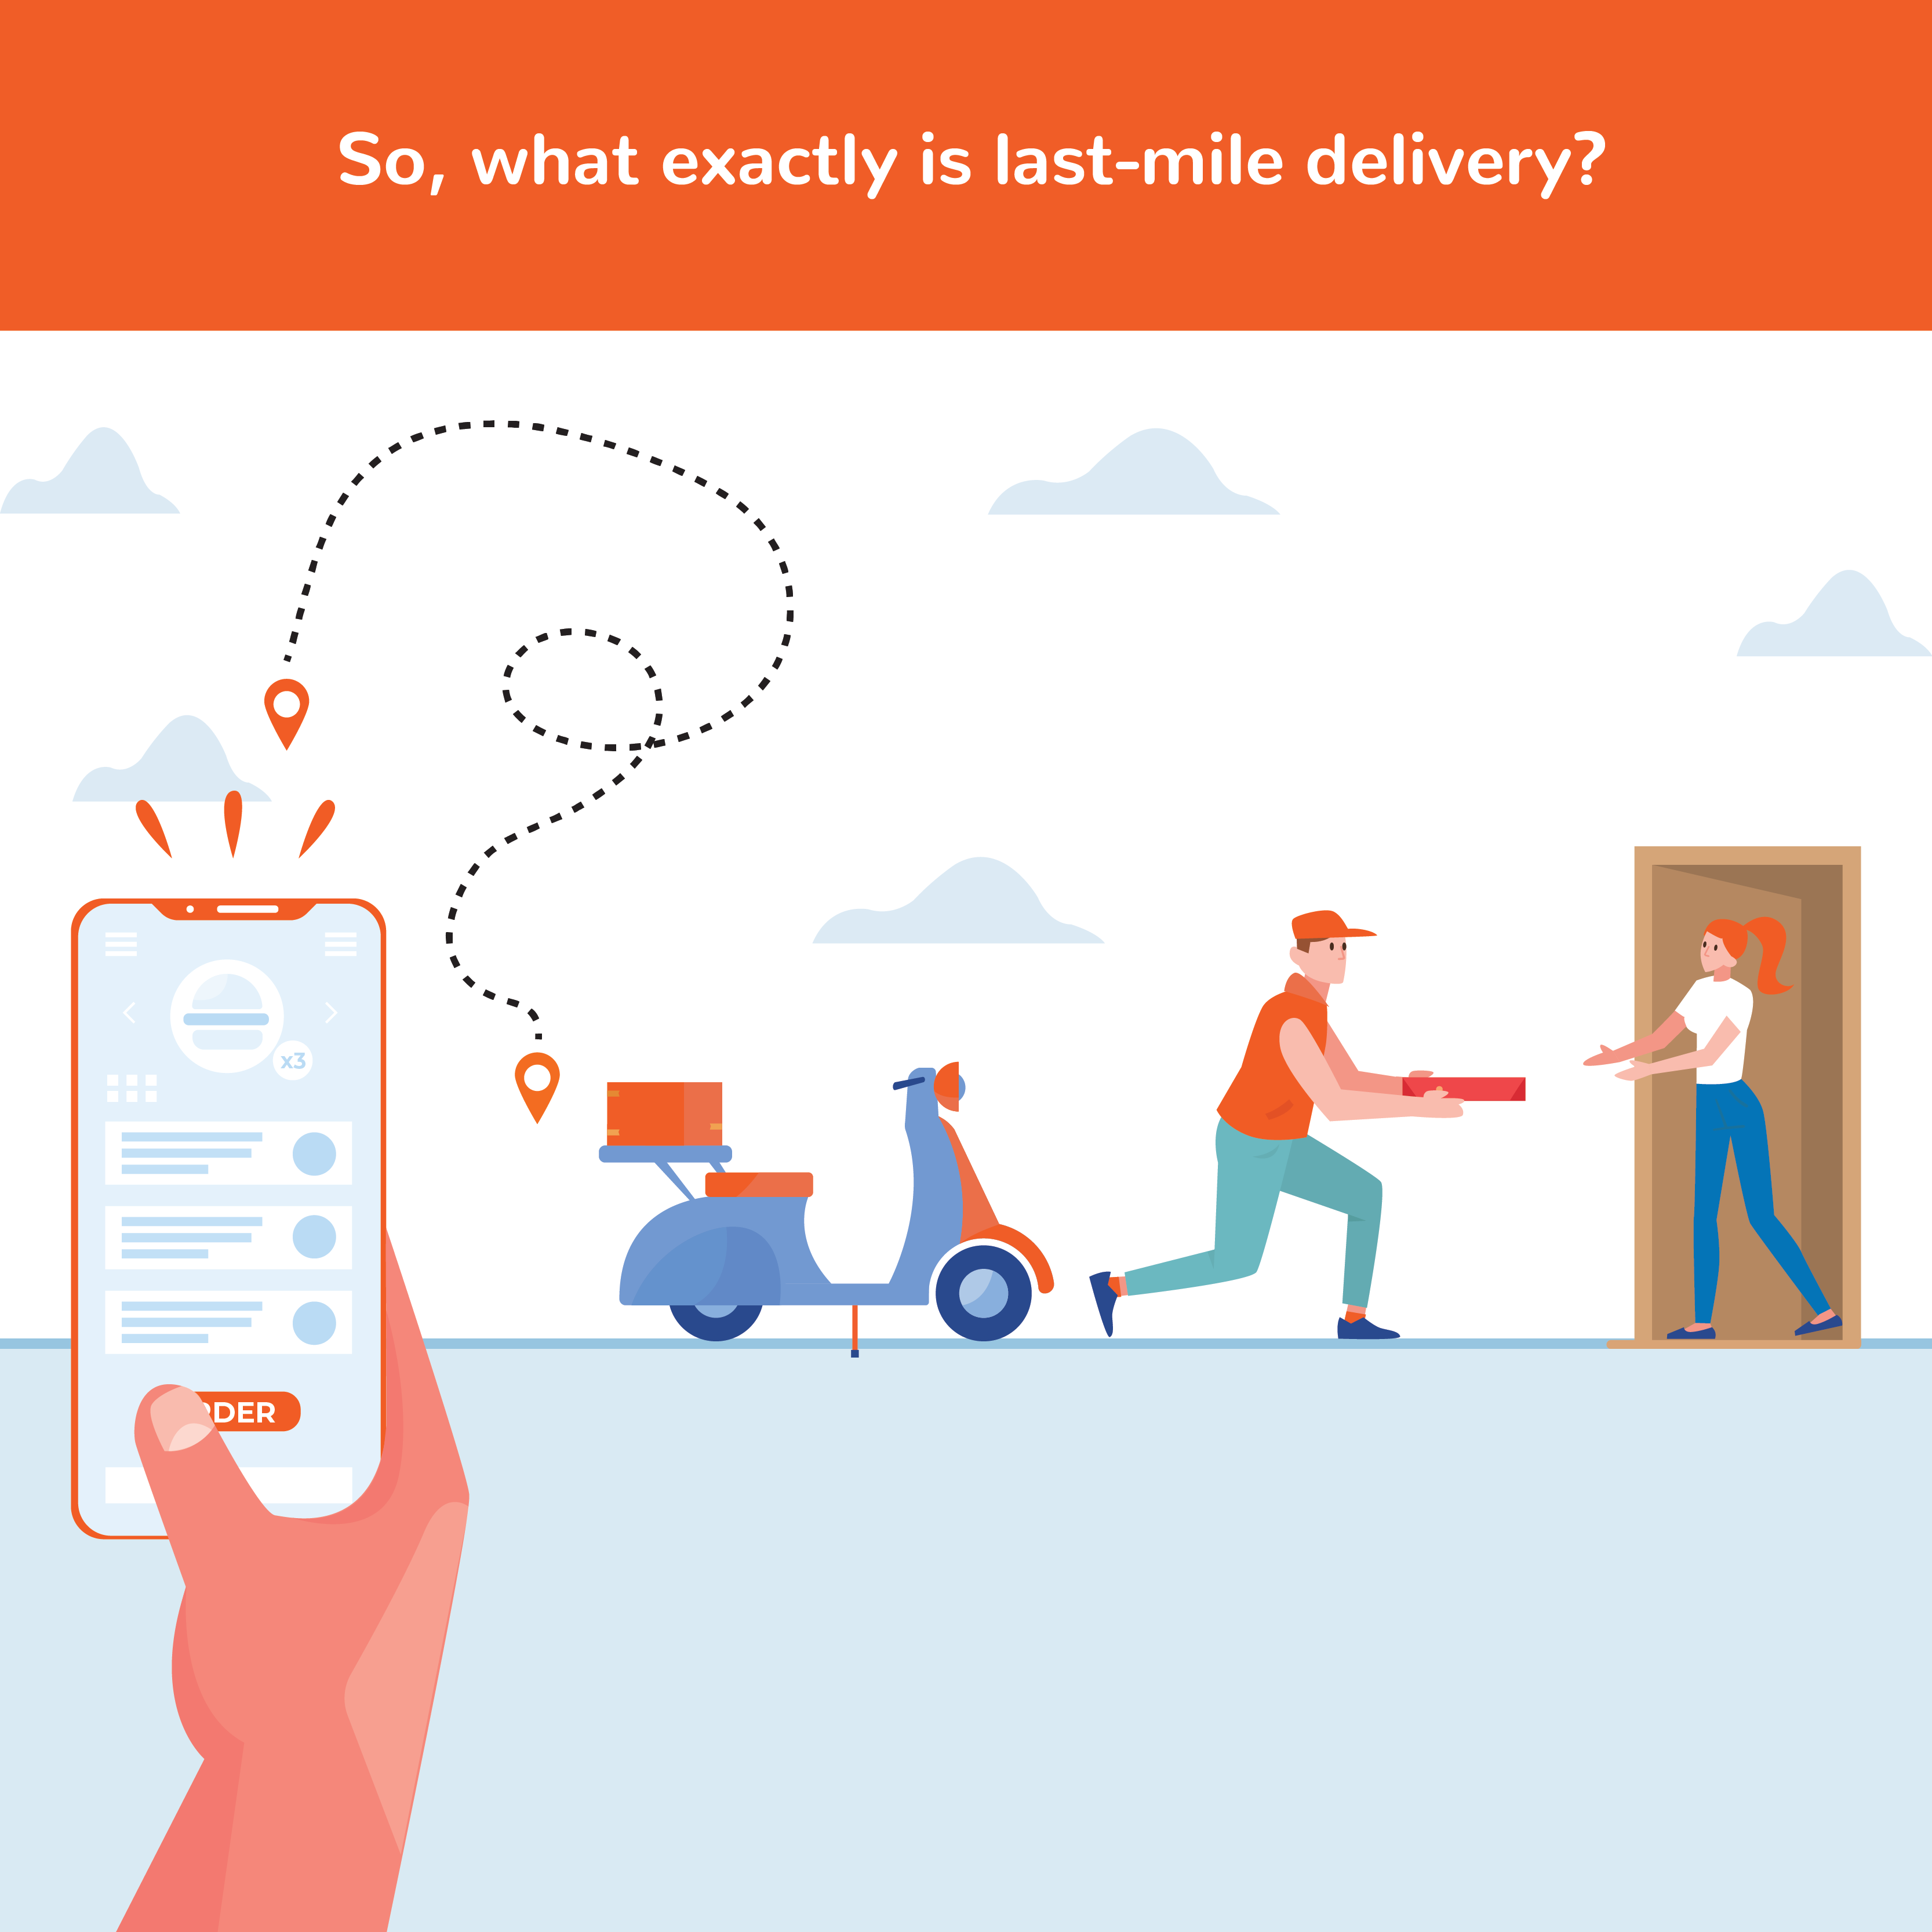 So, what exactly is last-mile delivery